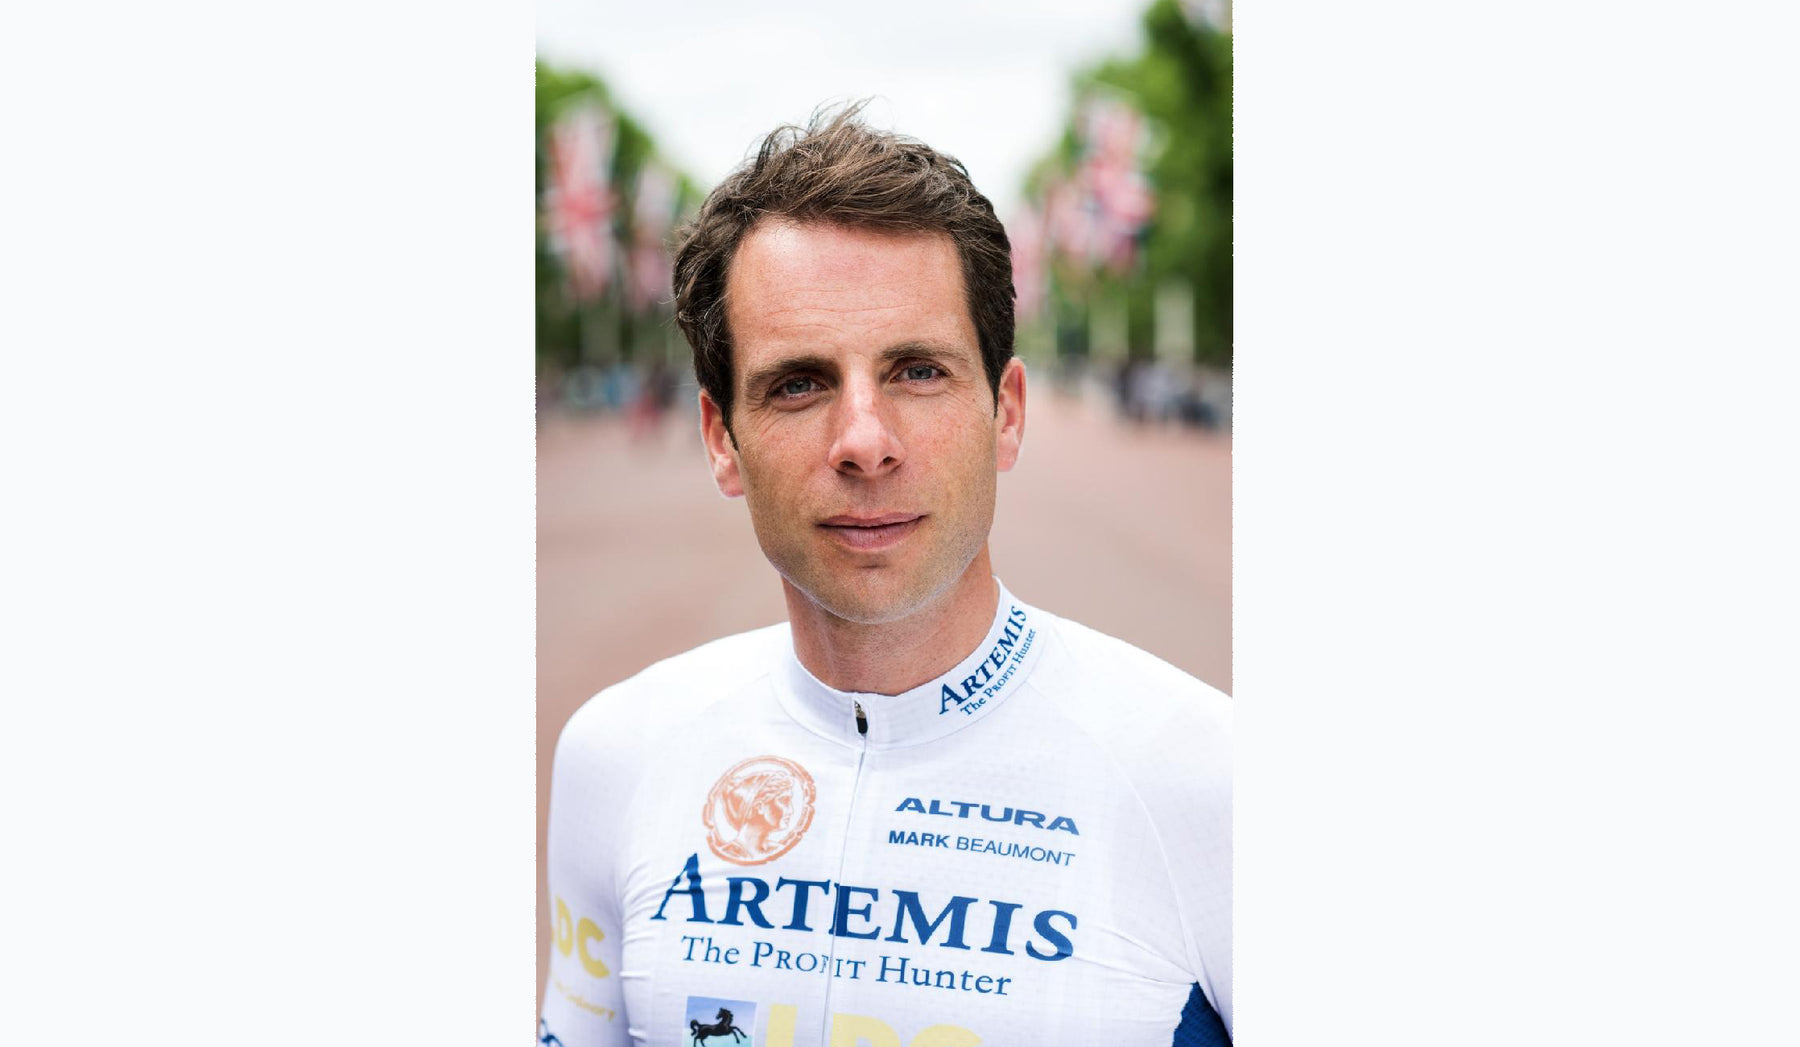 Mark Beaumont, World Champion endurance cyclist